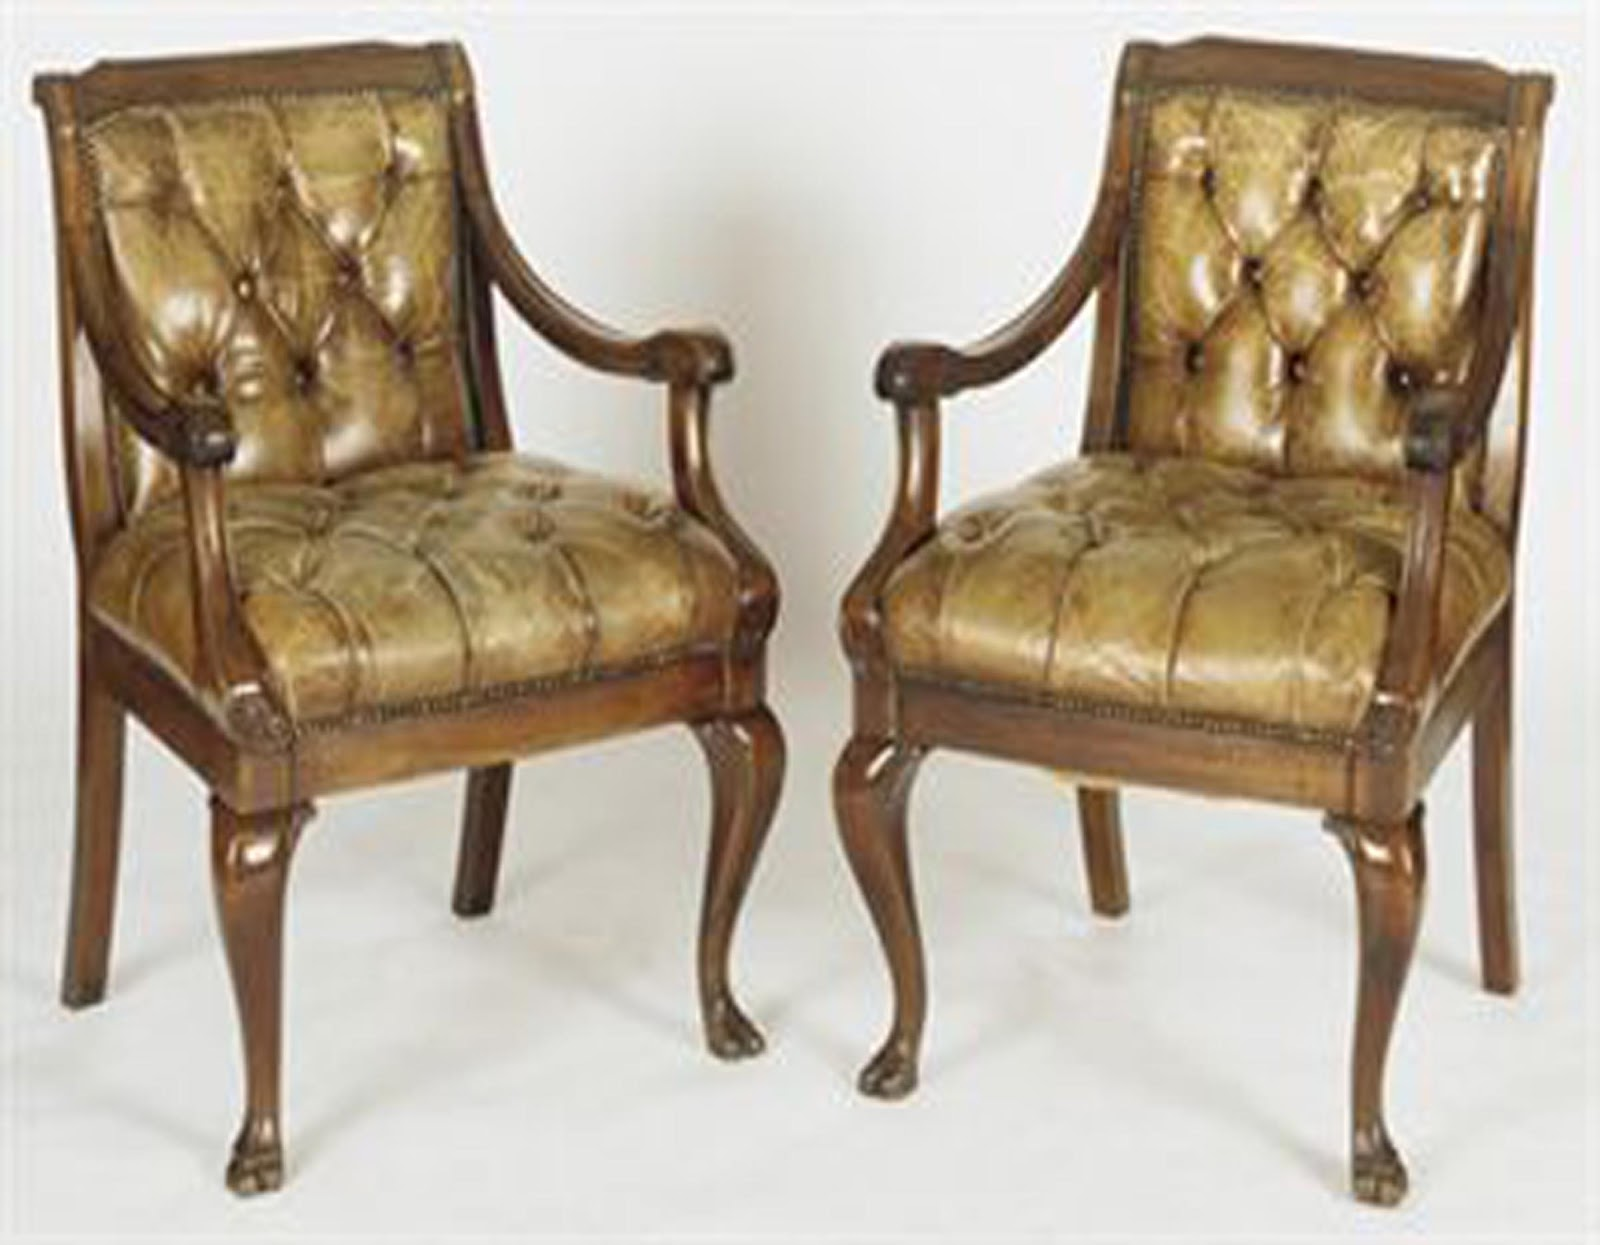 Graham Arader: A Pair of Handsome English Leather Upholstered